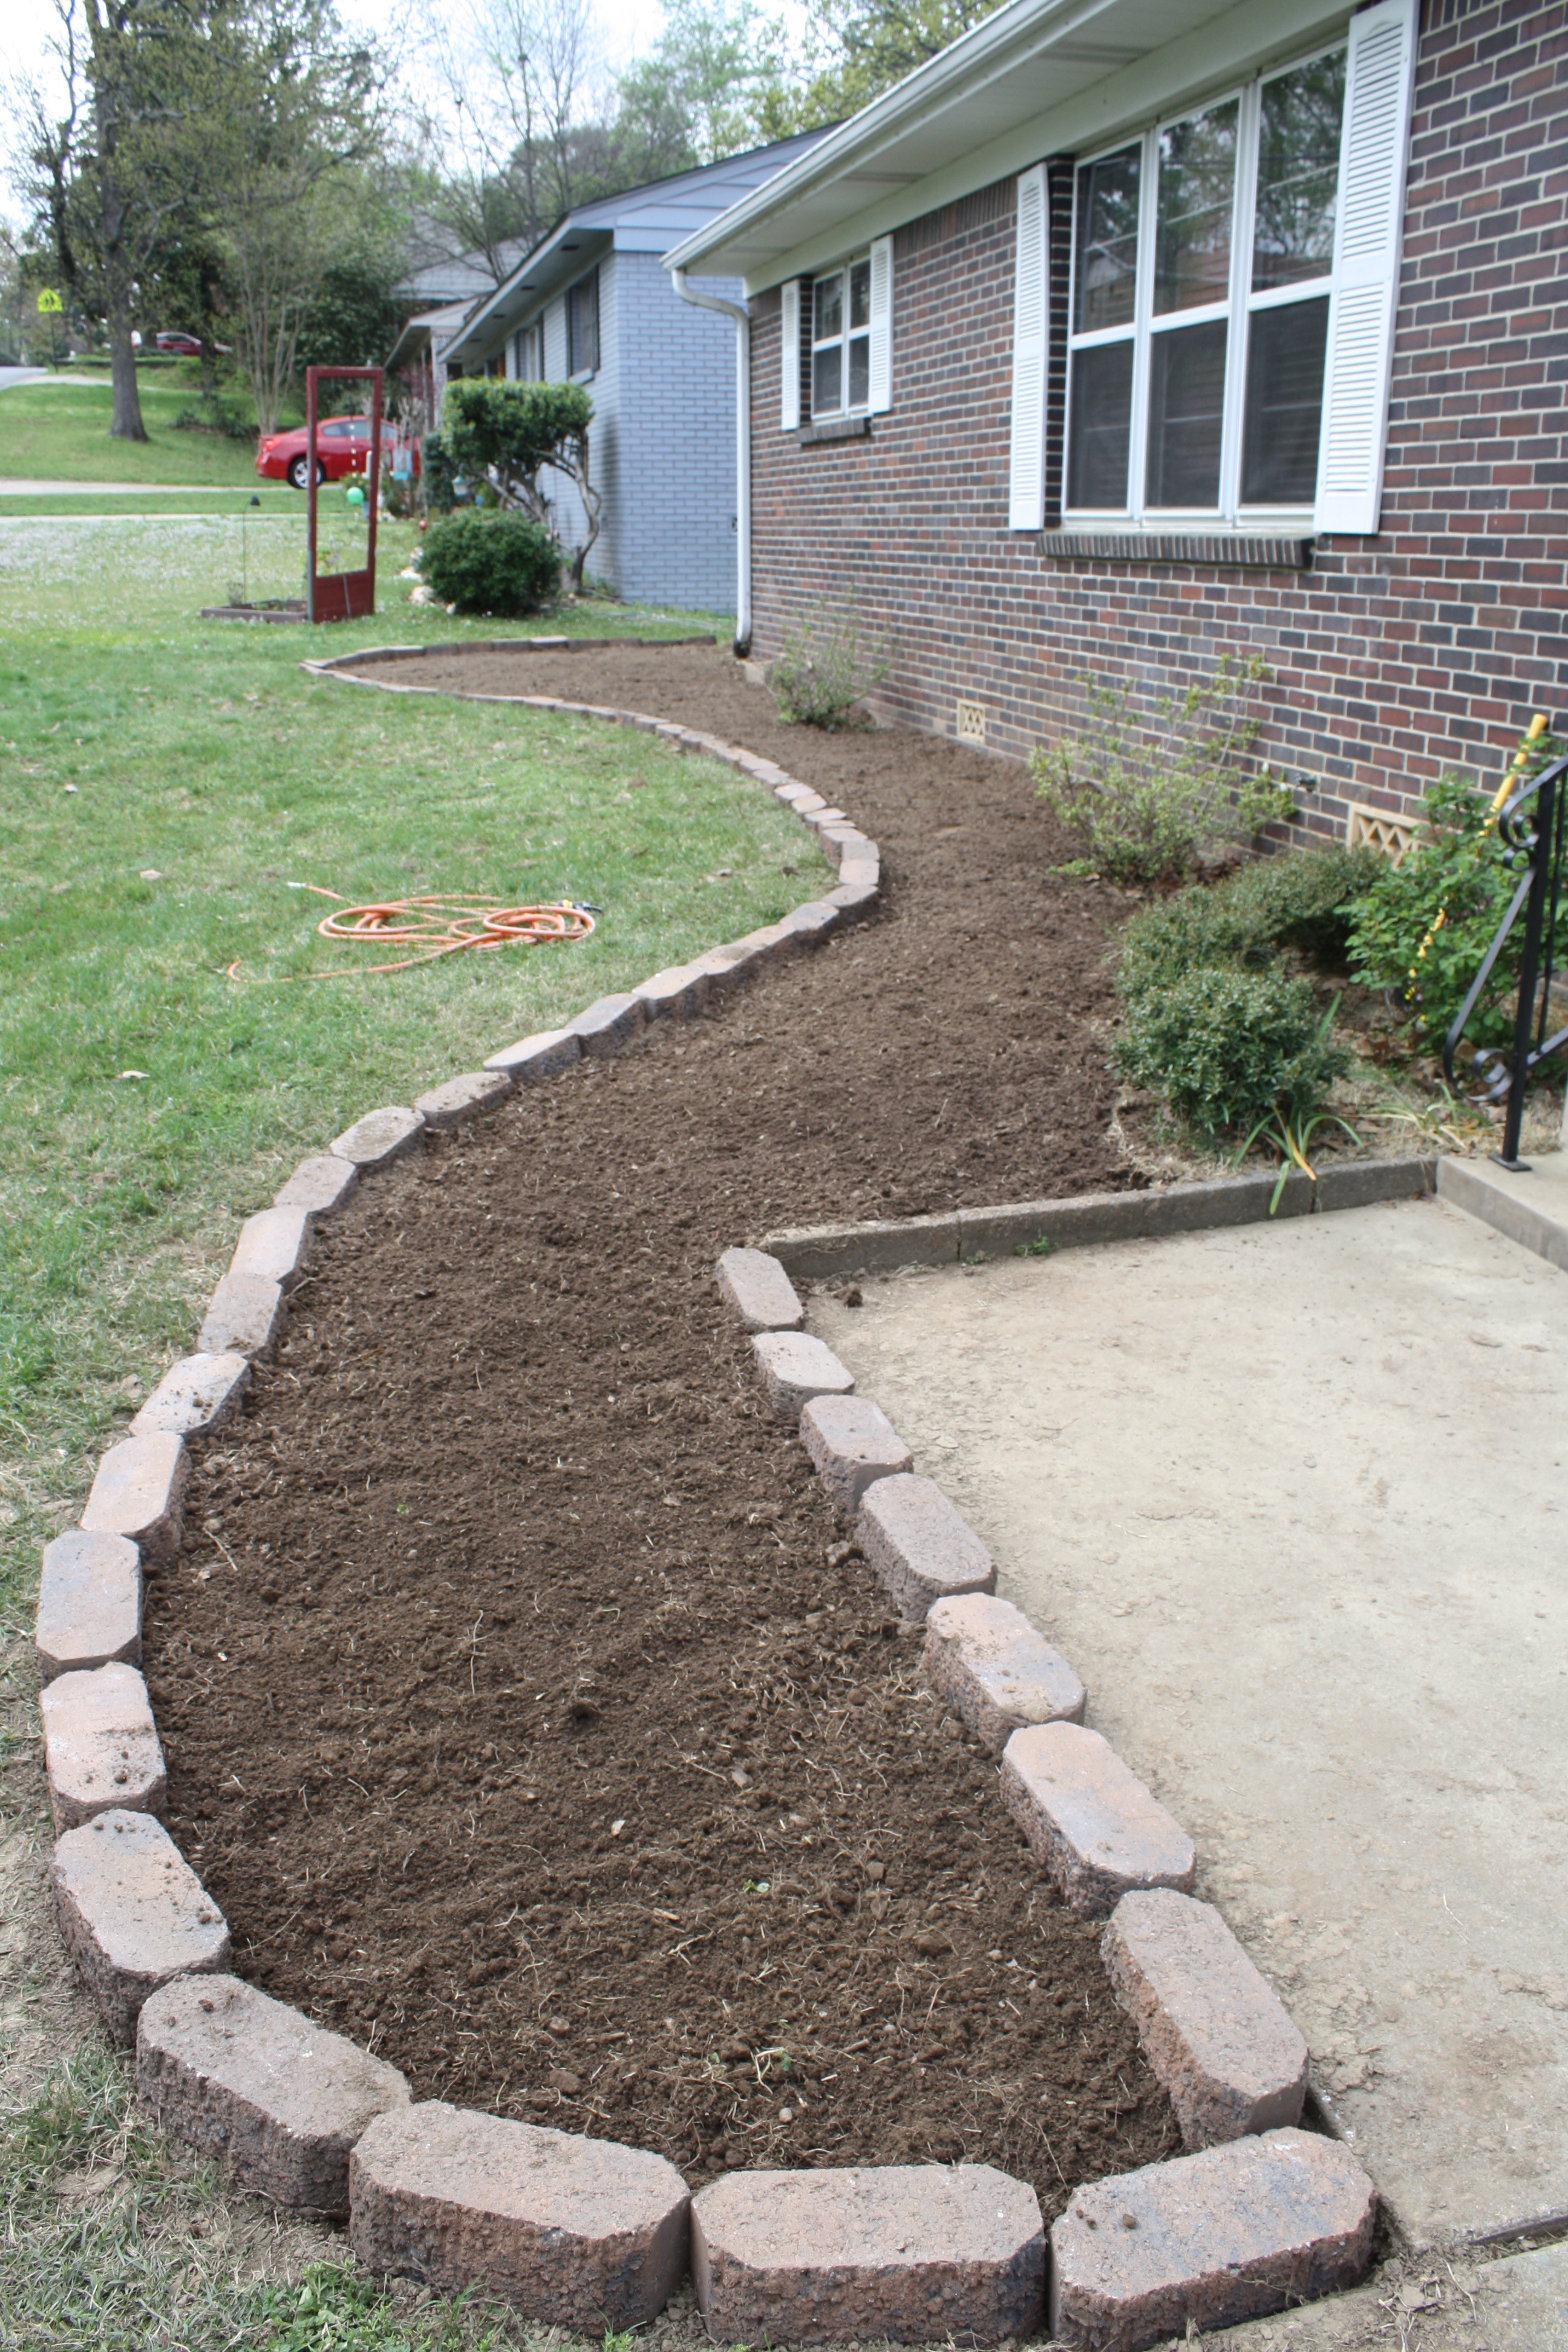 Manscaping phase 1 a guest post from aaron rosemary for Small flower beds front homes